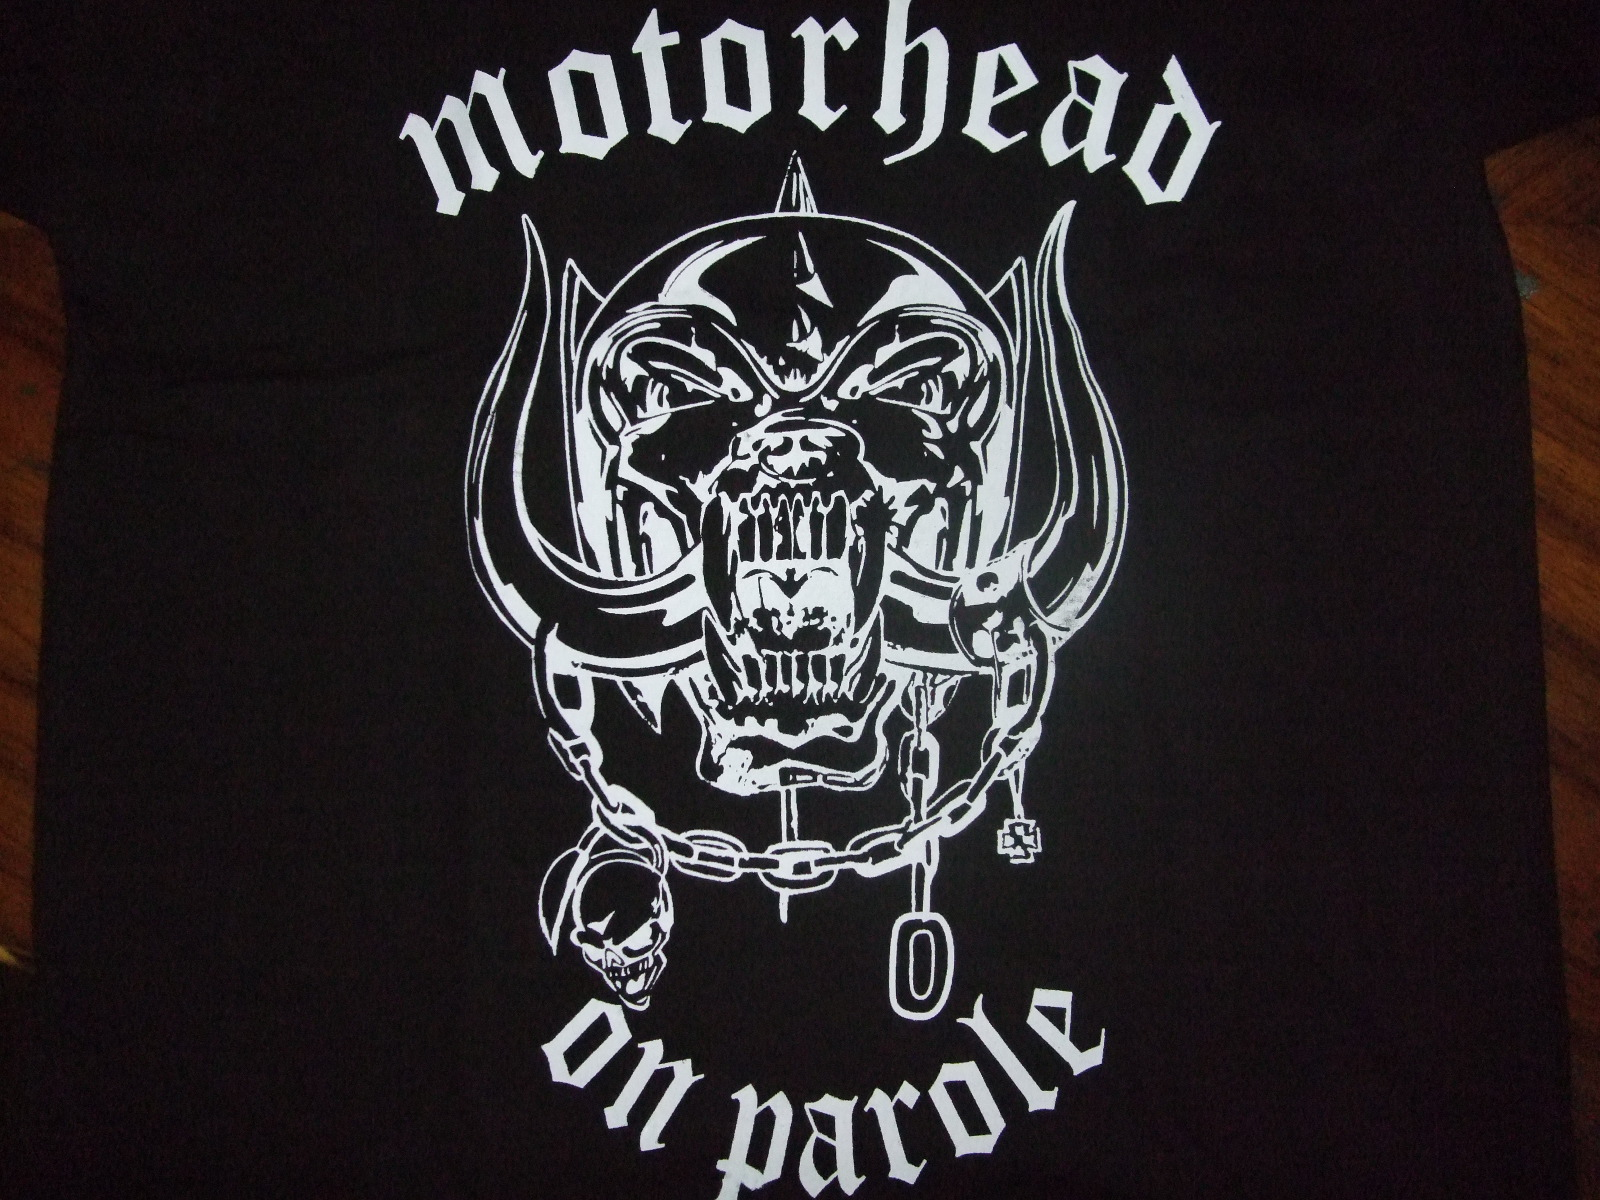 MOTORHEAD Heavy Metal Hard Rock Dark Skull Skulls E Wallpaper